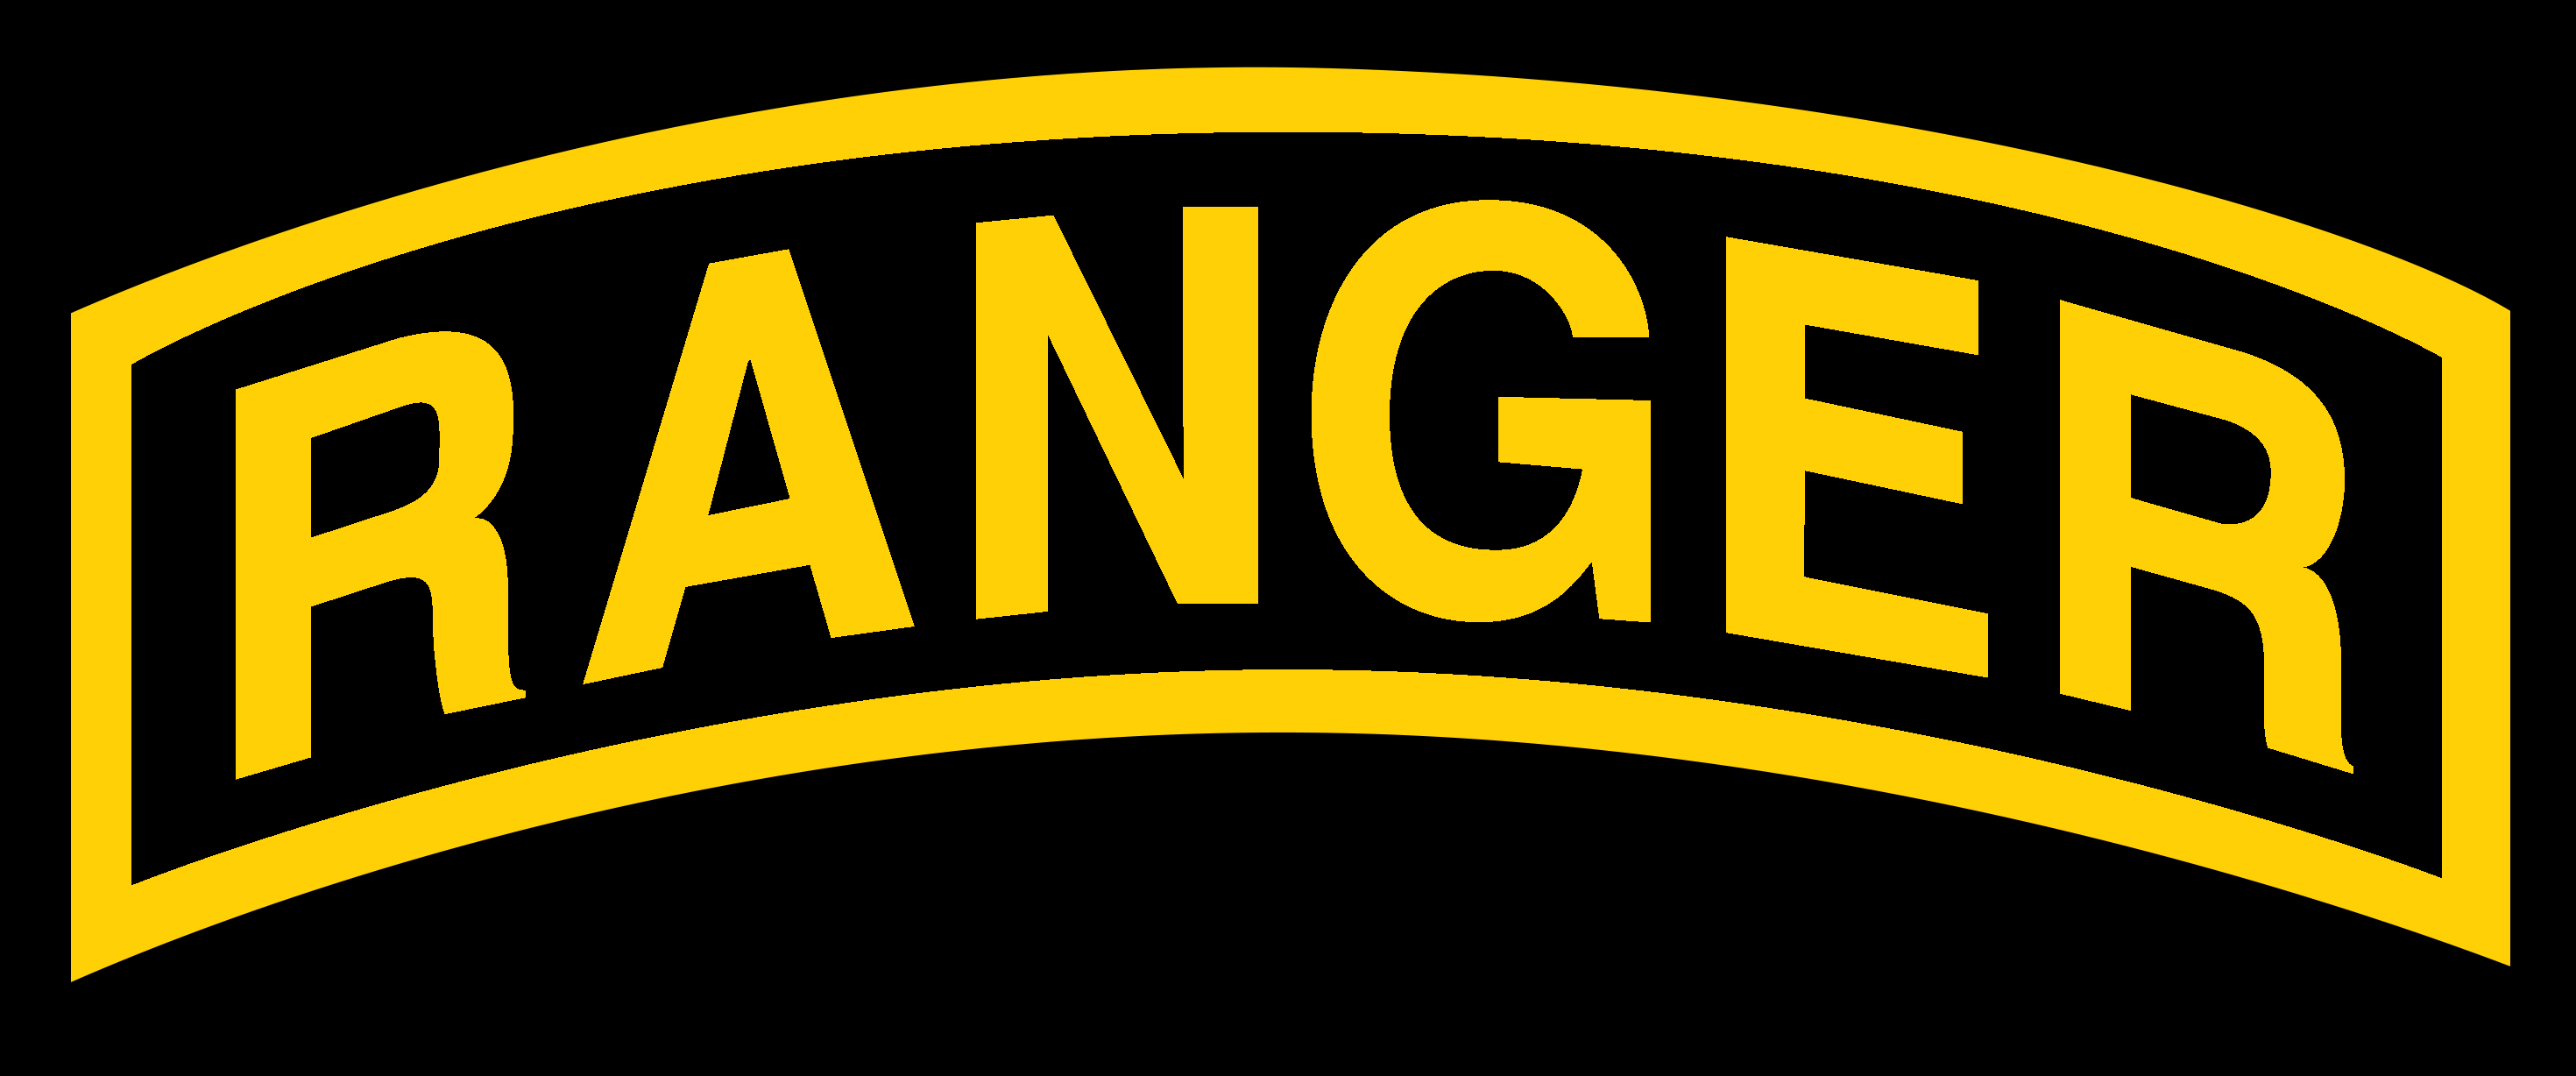 Us Army Rangers T Shirts Carrerasconfuturo Com